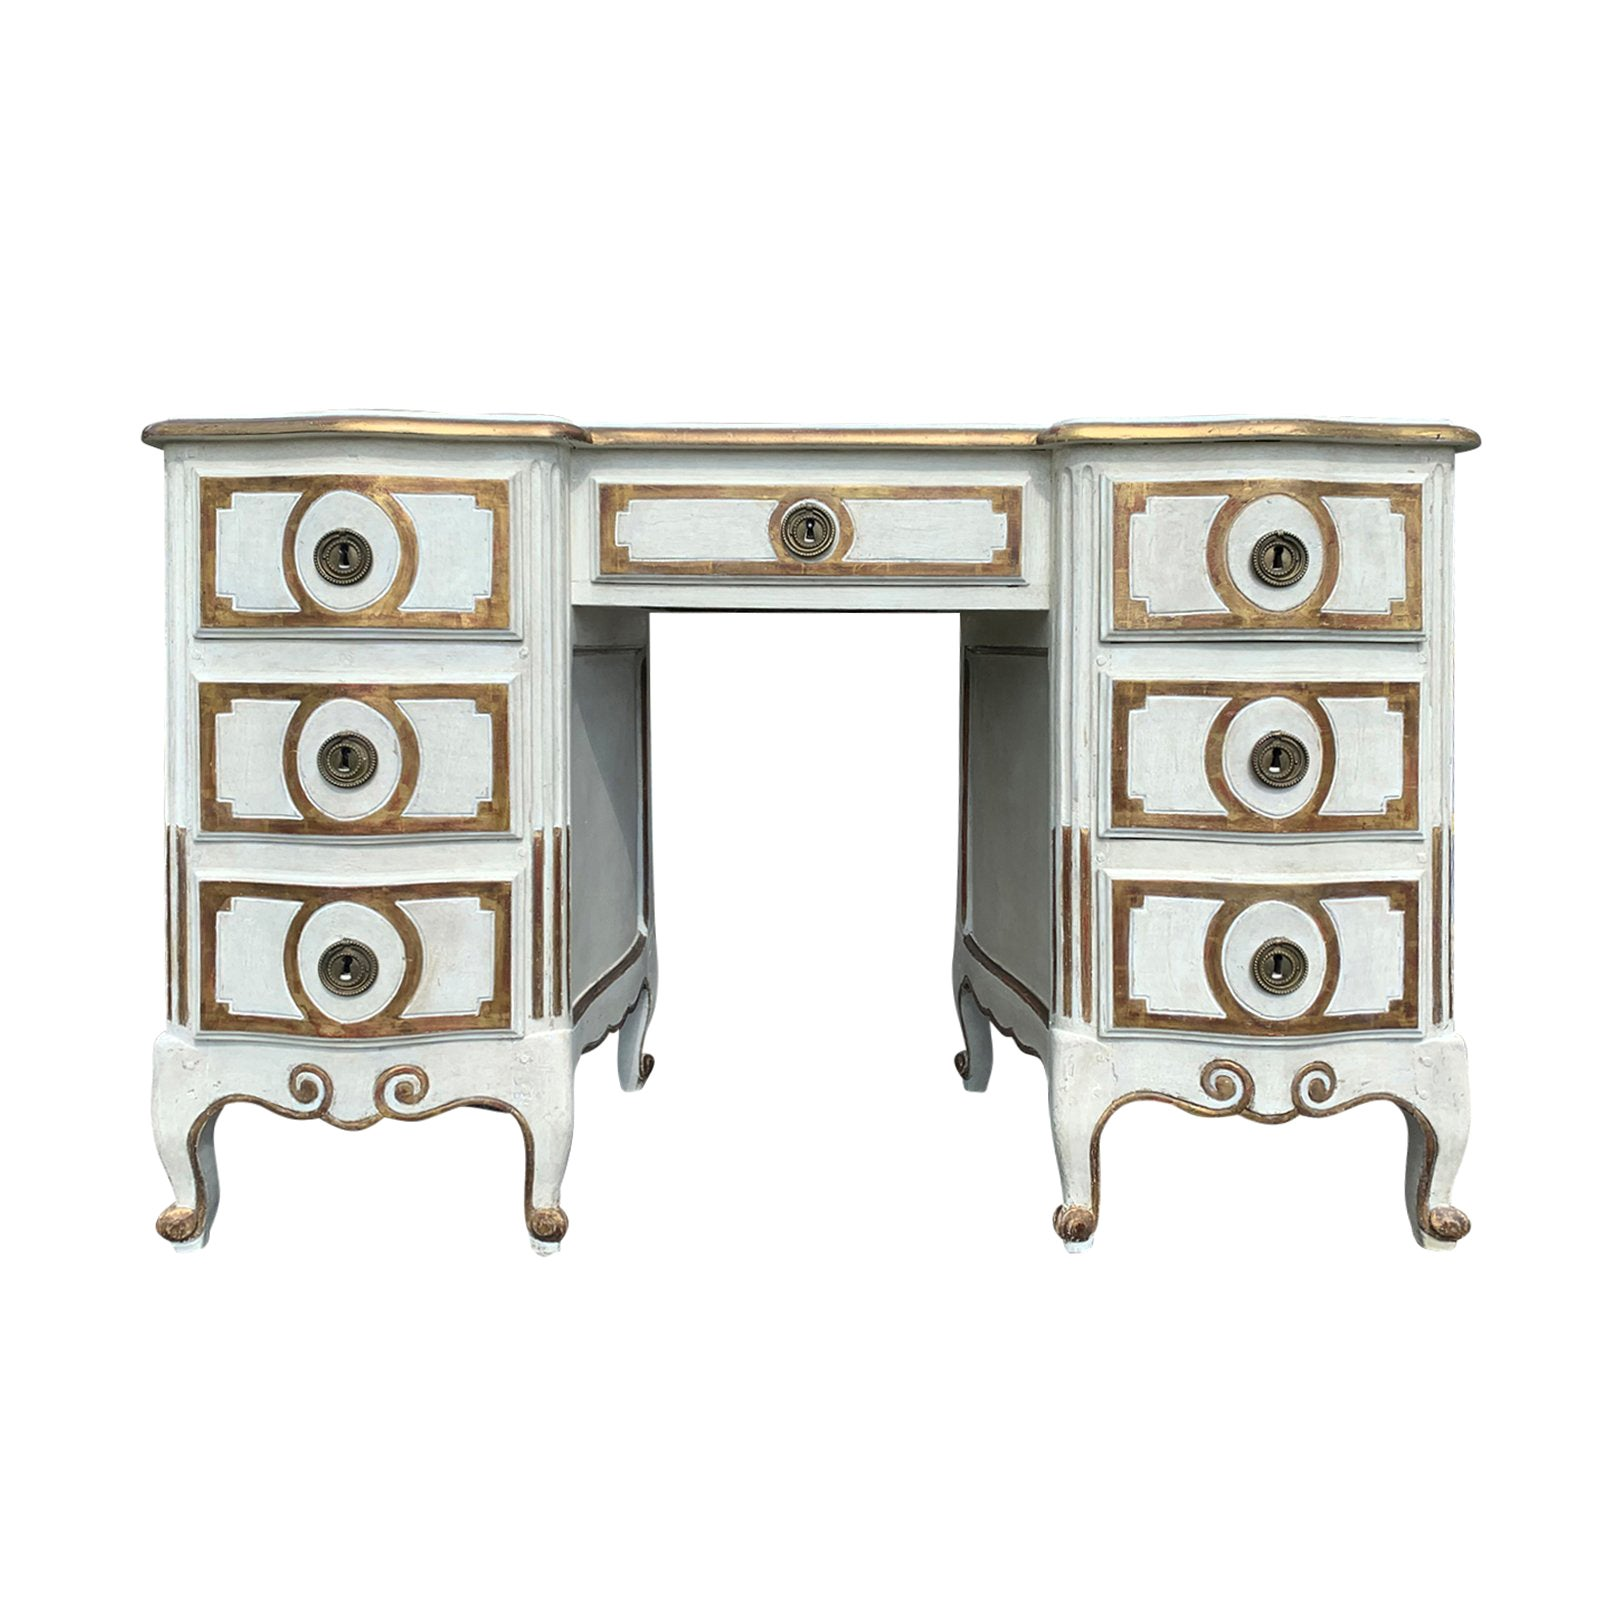 20th Century Italian Dressing Table/Desk, Painted White & Gold